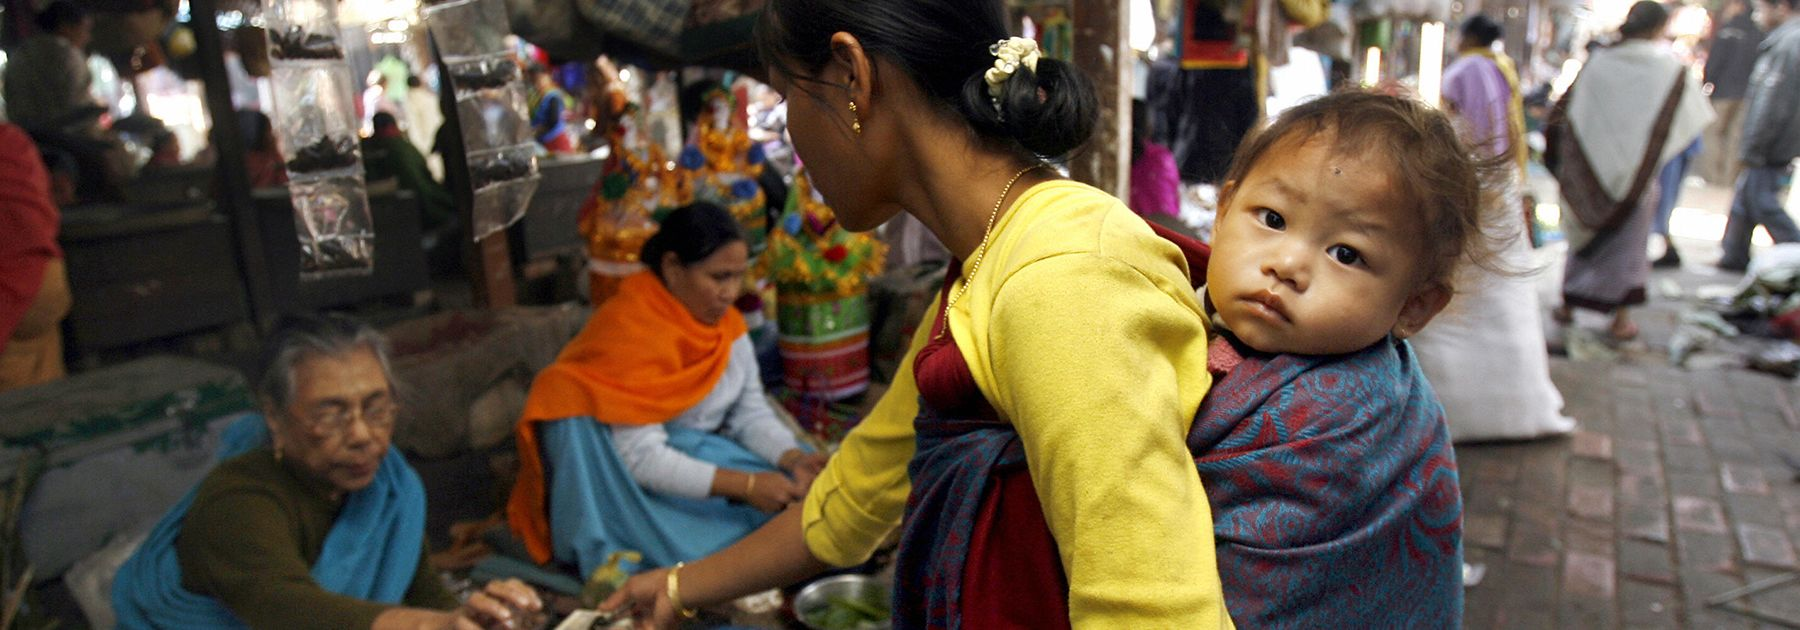 A Manipuri woman, carrying a child on her back, purchases goods from a vendor at the Ima Market (mother's market) in Imphal. (DESHAKALYAN CHOWDHURY/AFP/Getty Images)